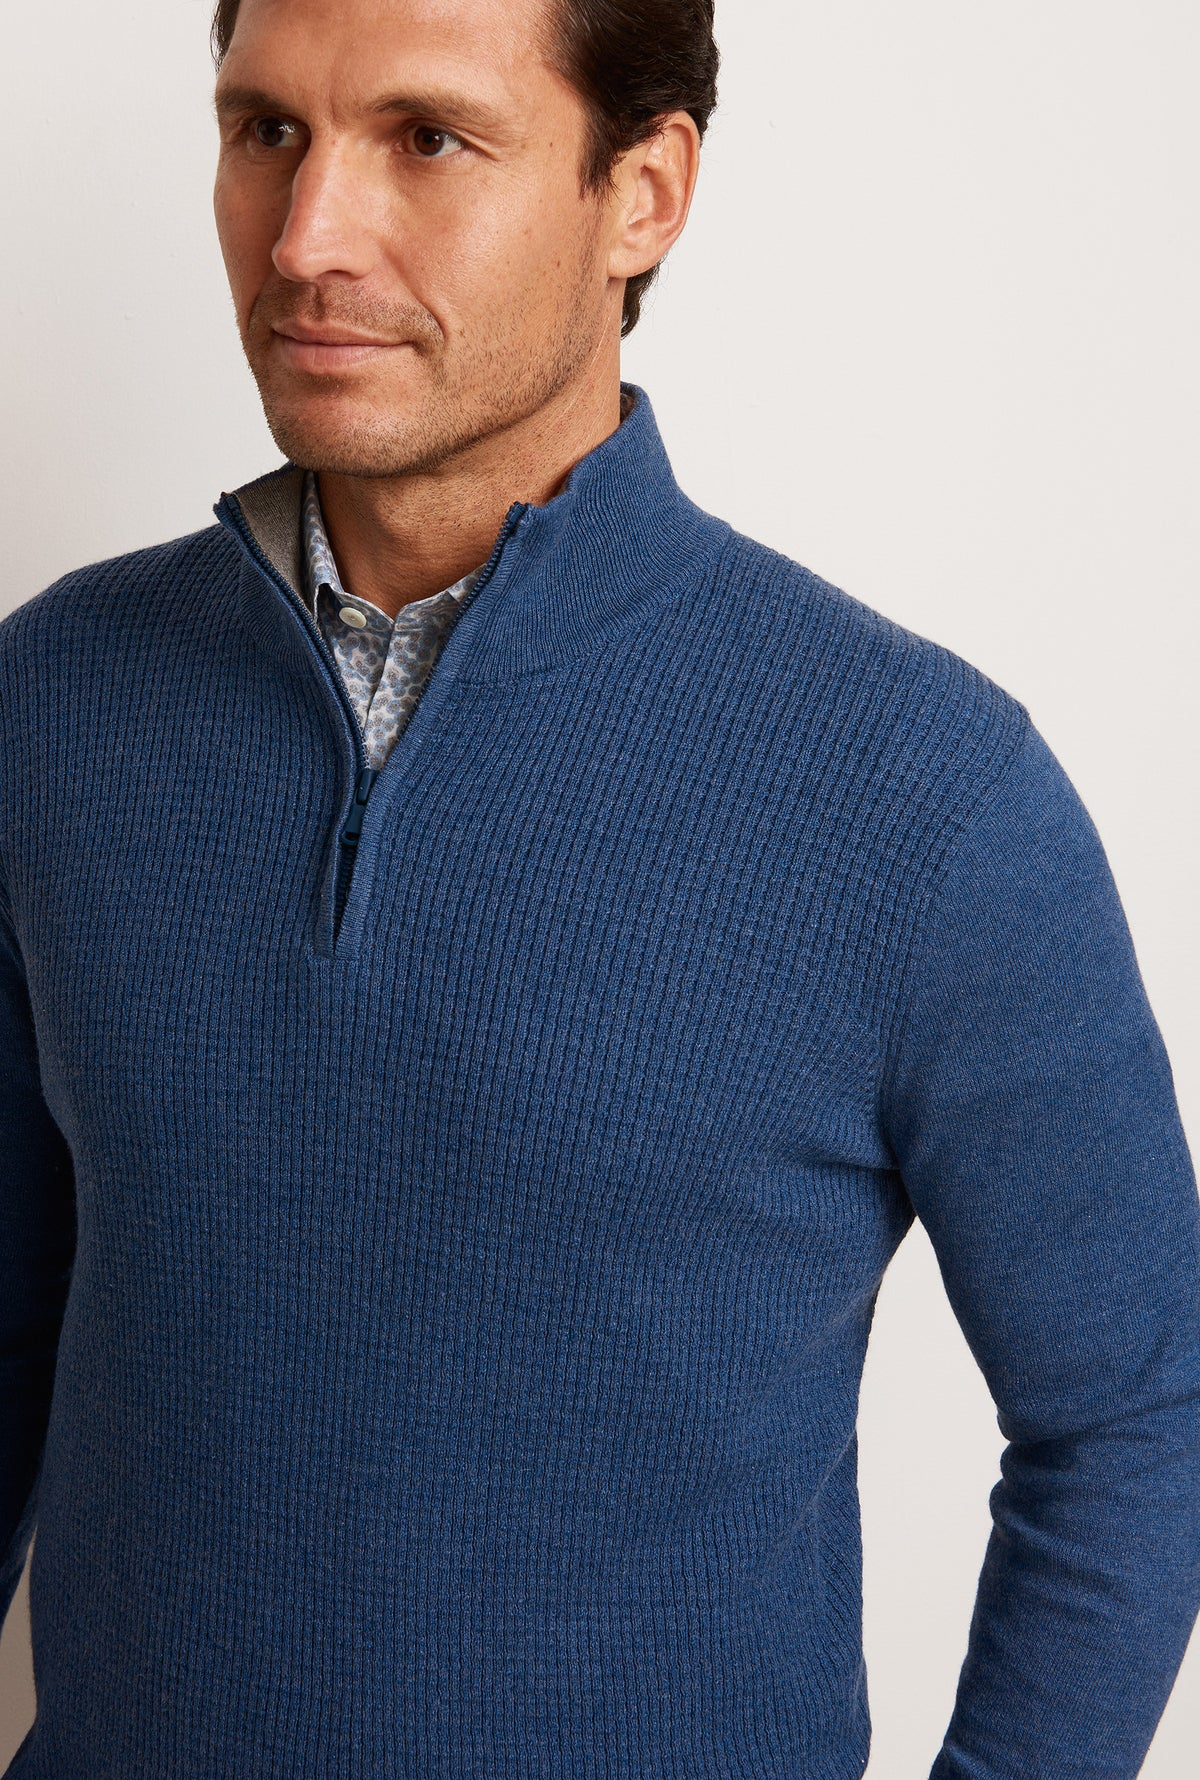 ZACHARY-PRELL-Higgins-SweatersModern-Menswear-New-Dress-Code